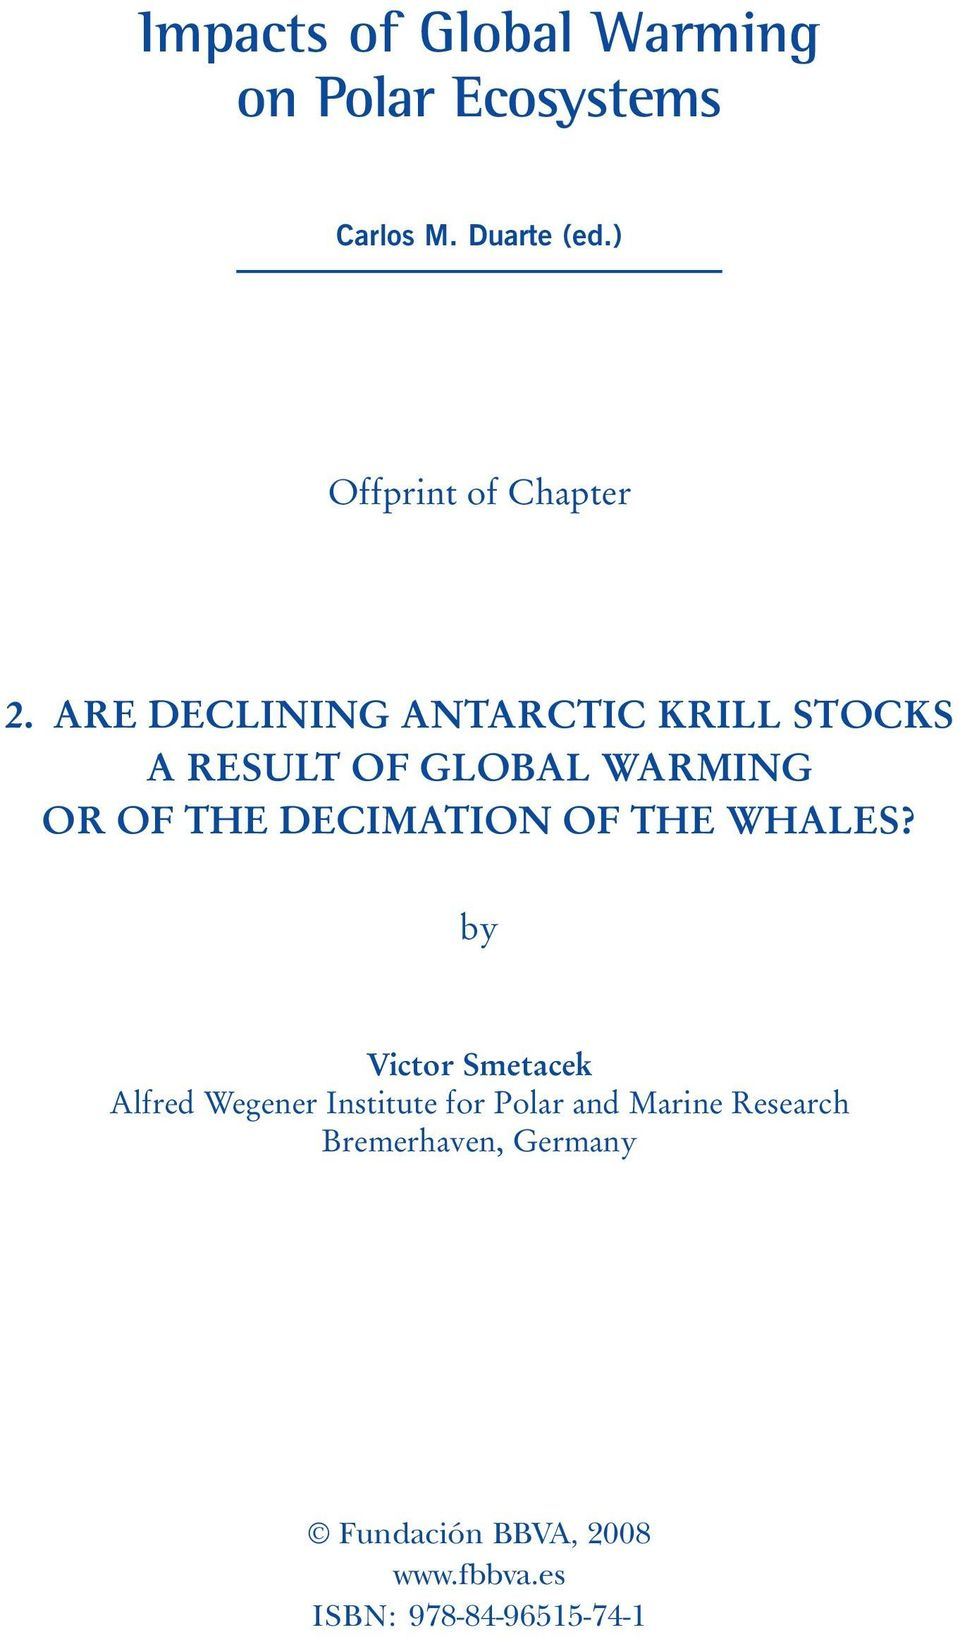 ARE DECLINING ANTARCTIC KRILL STOCKS A RESULT OF GLOBAL WARMING OR OF THE DECIMATION